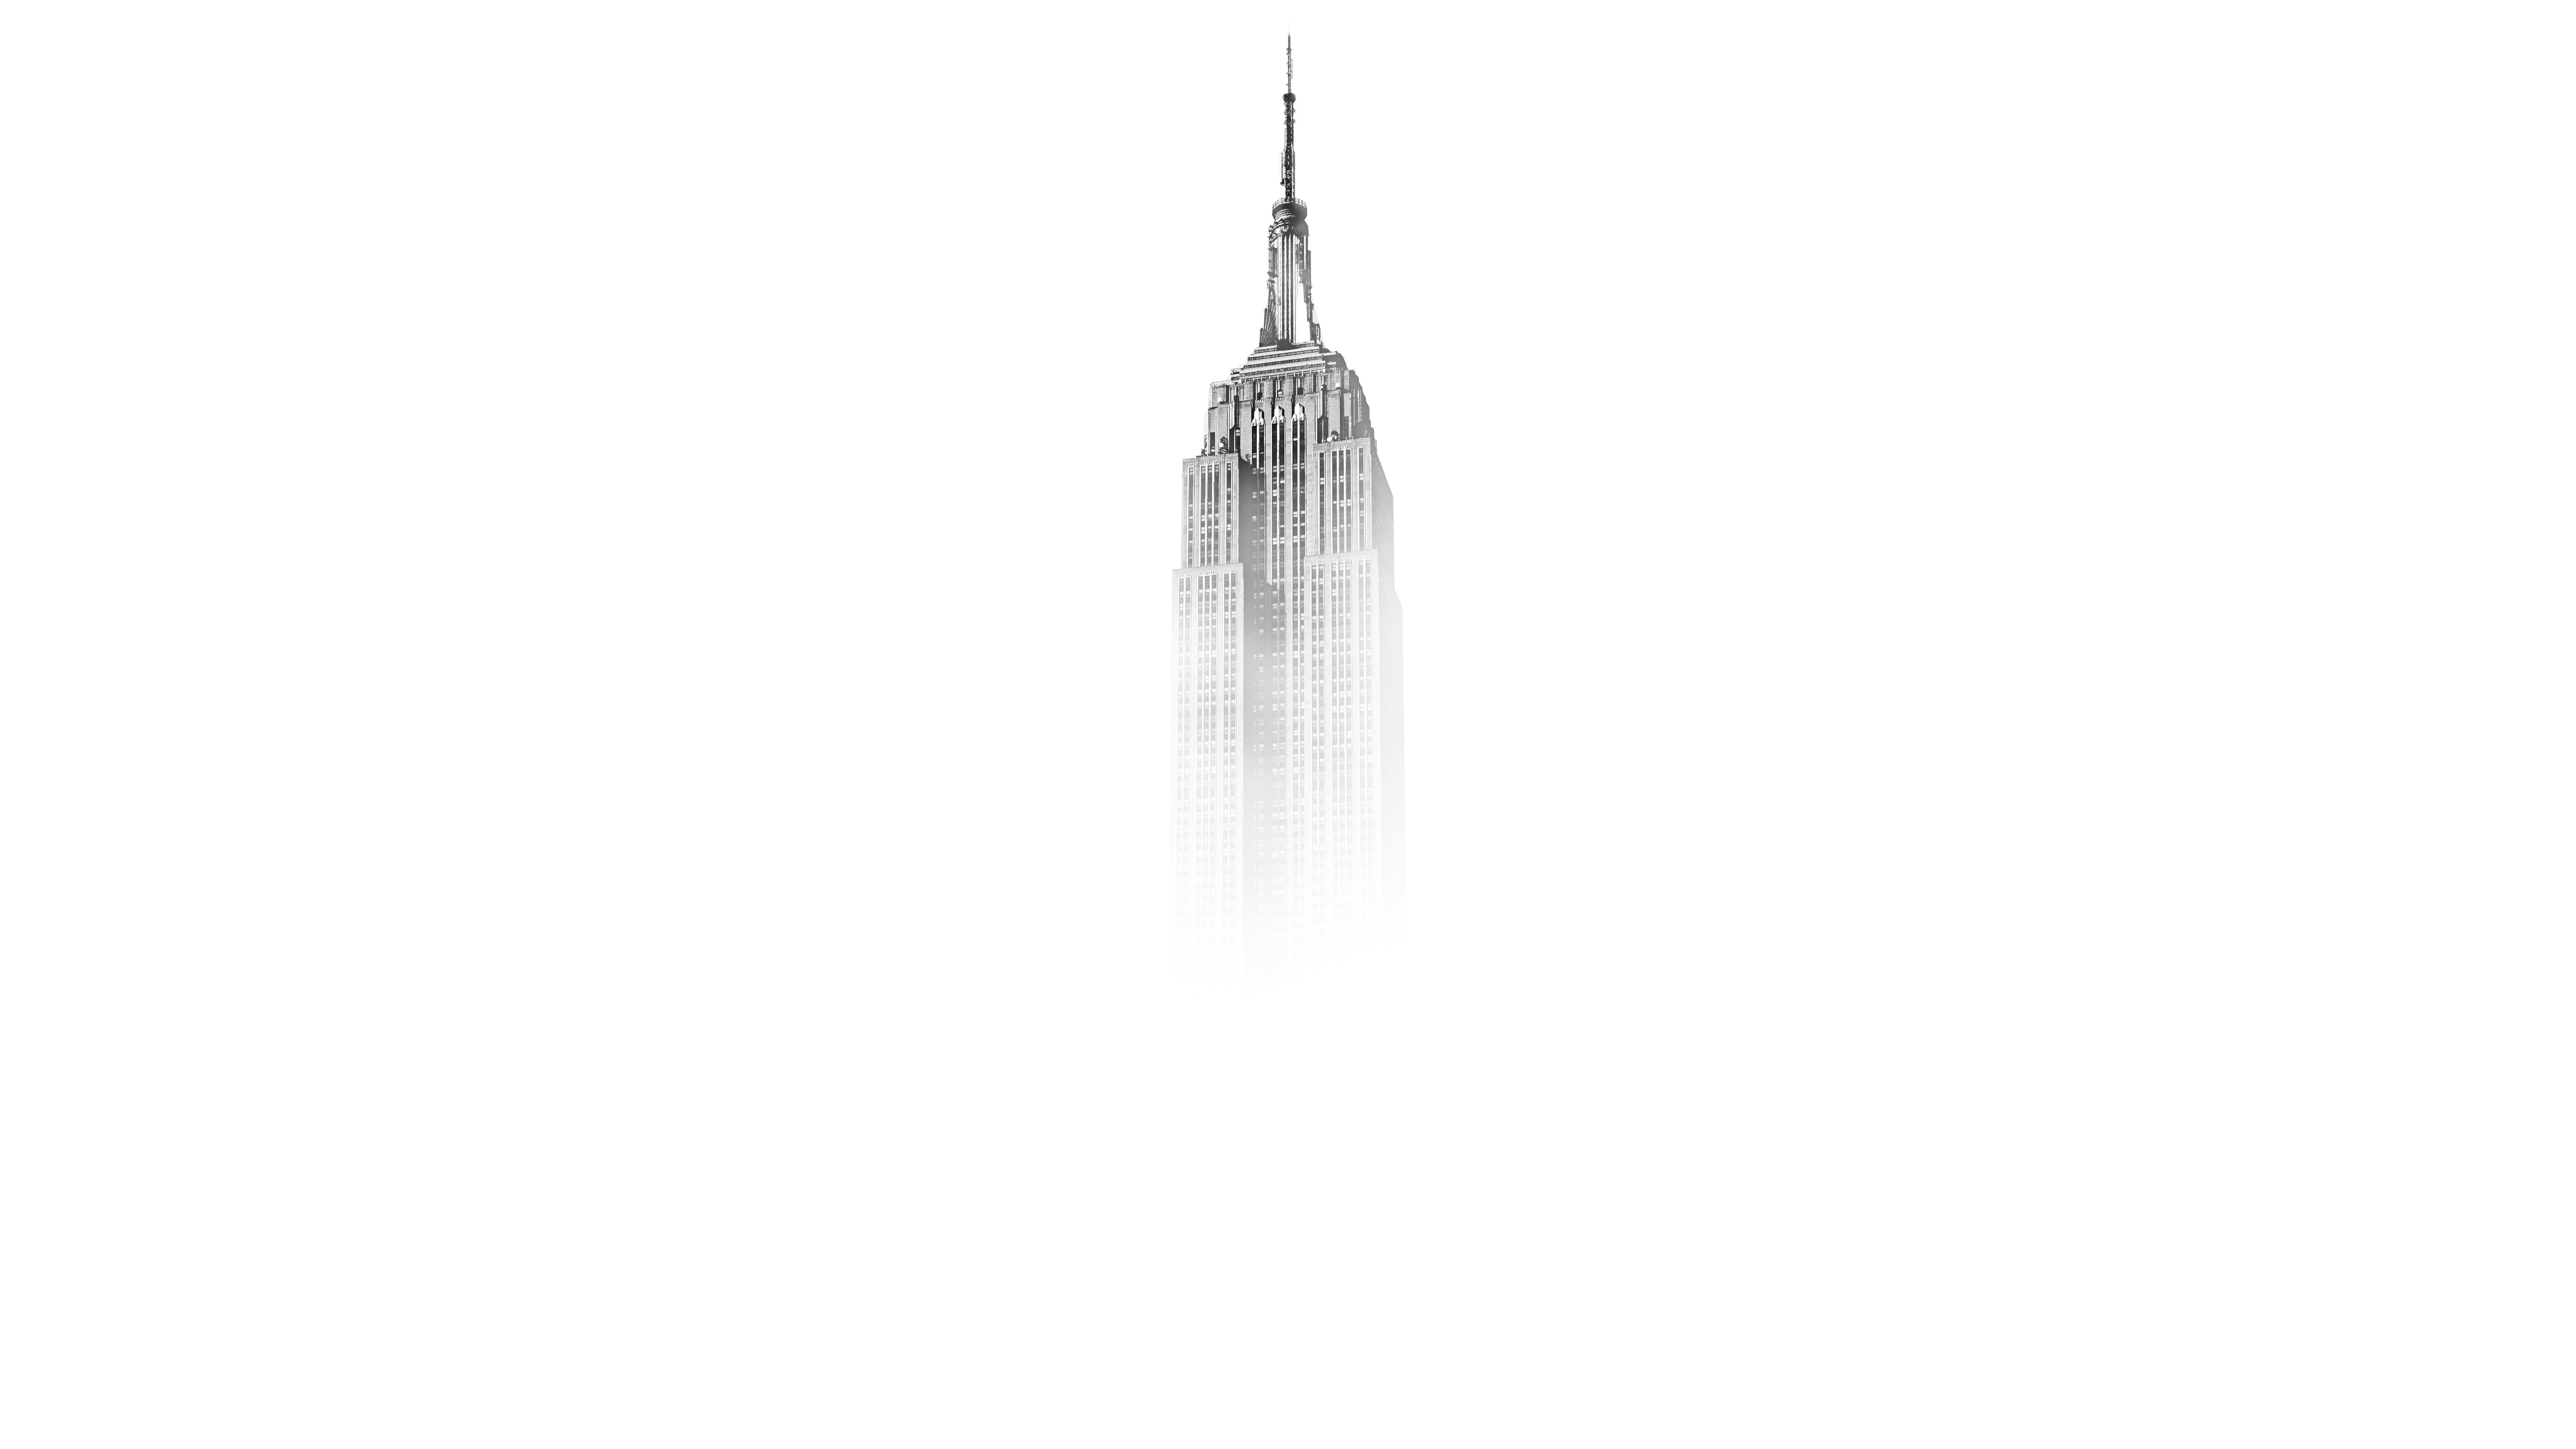 Wonderful Wallpaper Night Empire State Building - 946343873  Pictures-307957.jpg